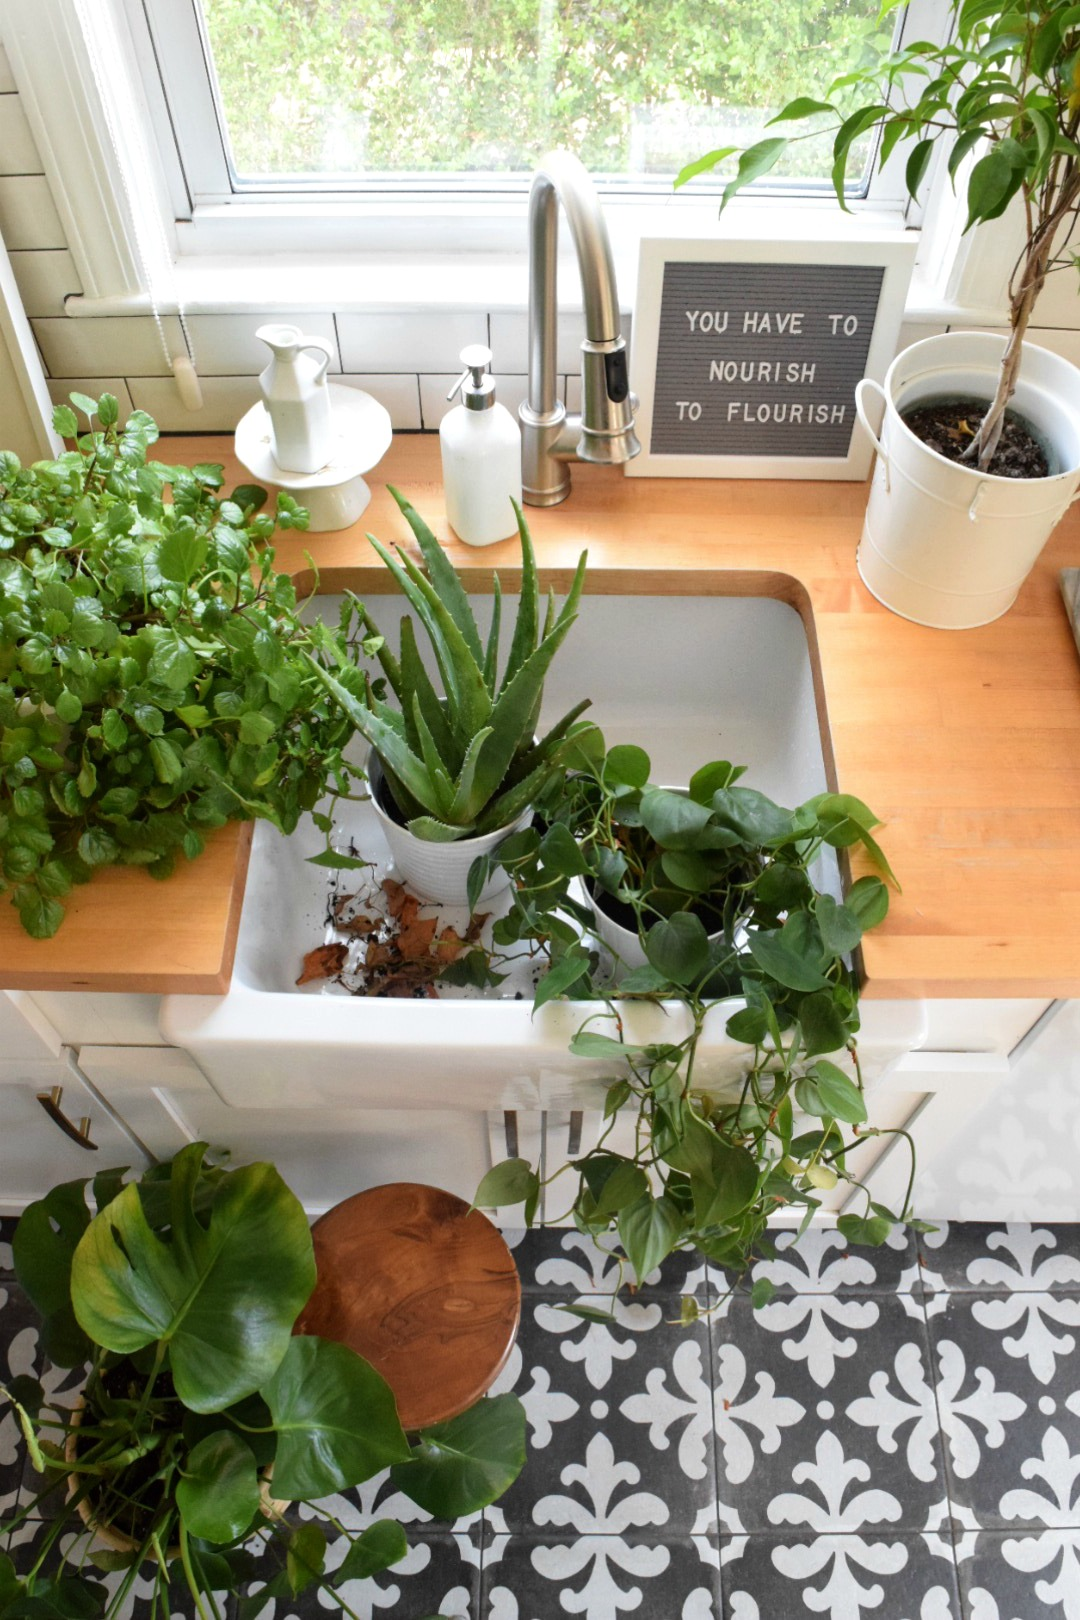 House Plants- My Top House Plants That Can Be Left Alone